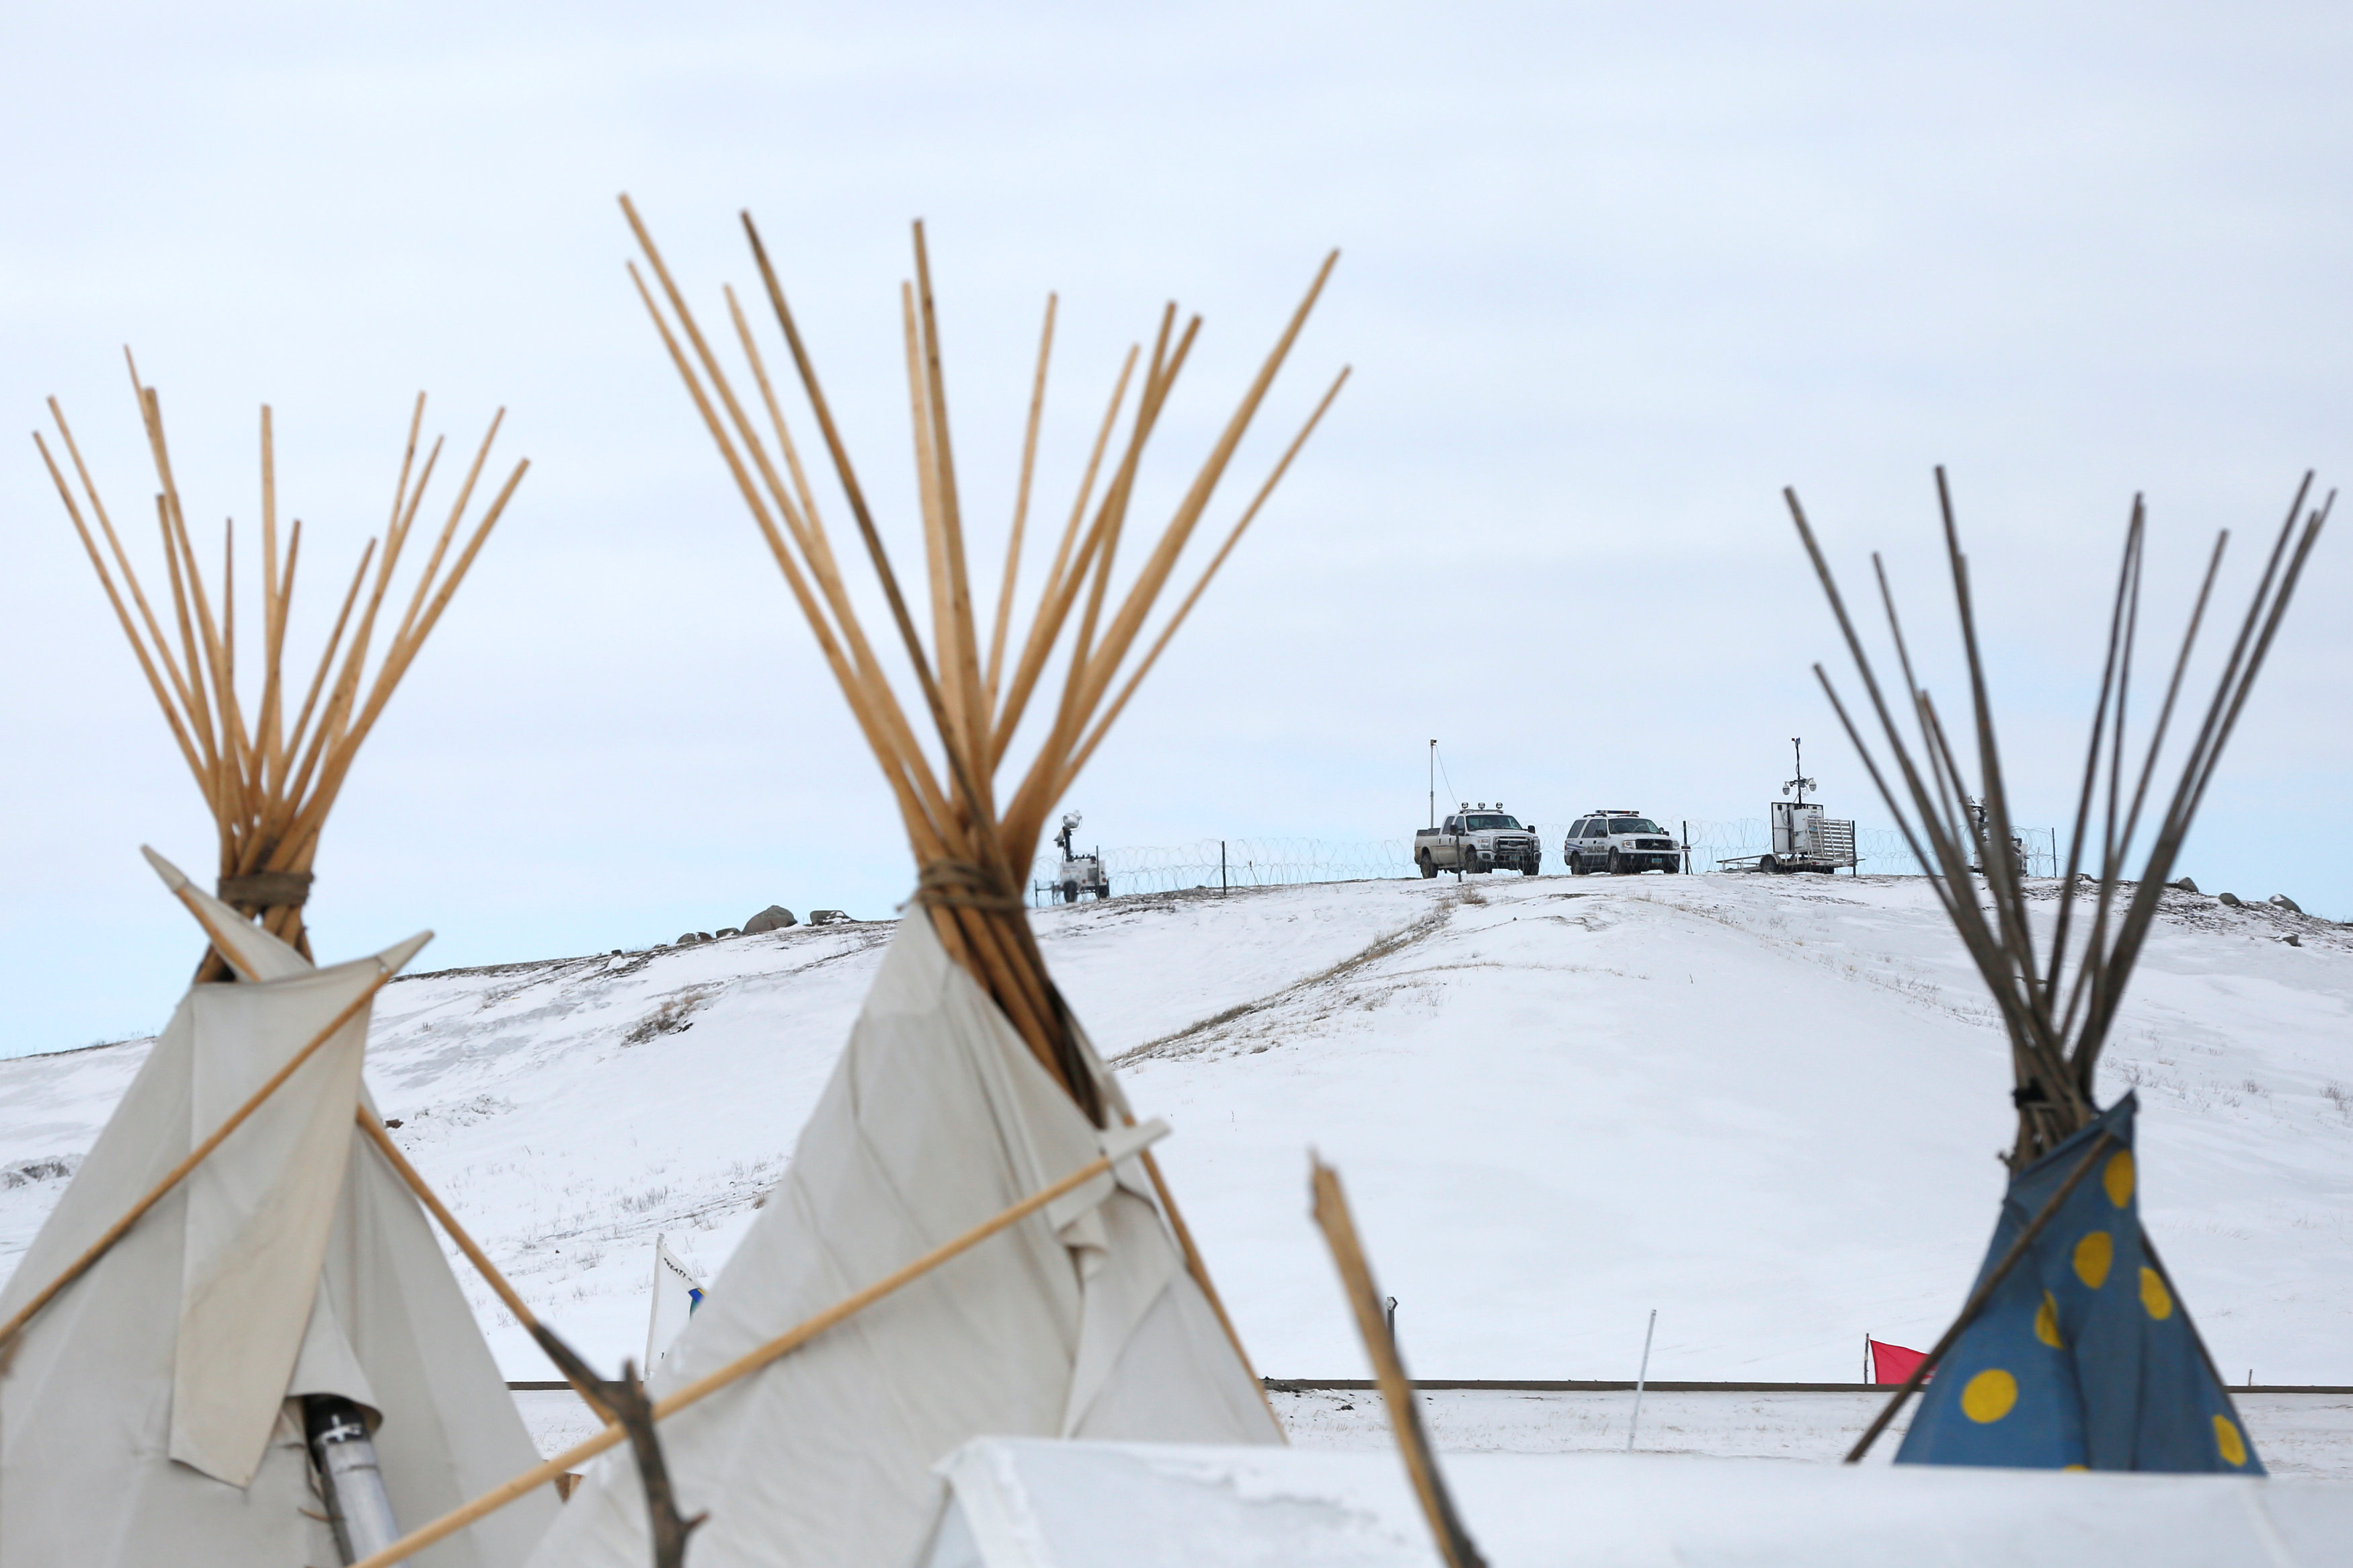 police vehicles sit on outskirts of protest camp in North Dakota